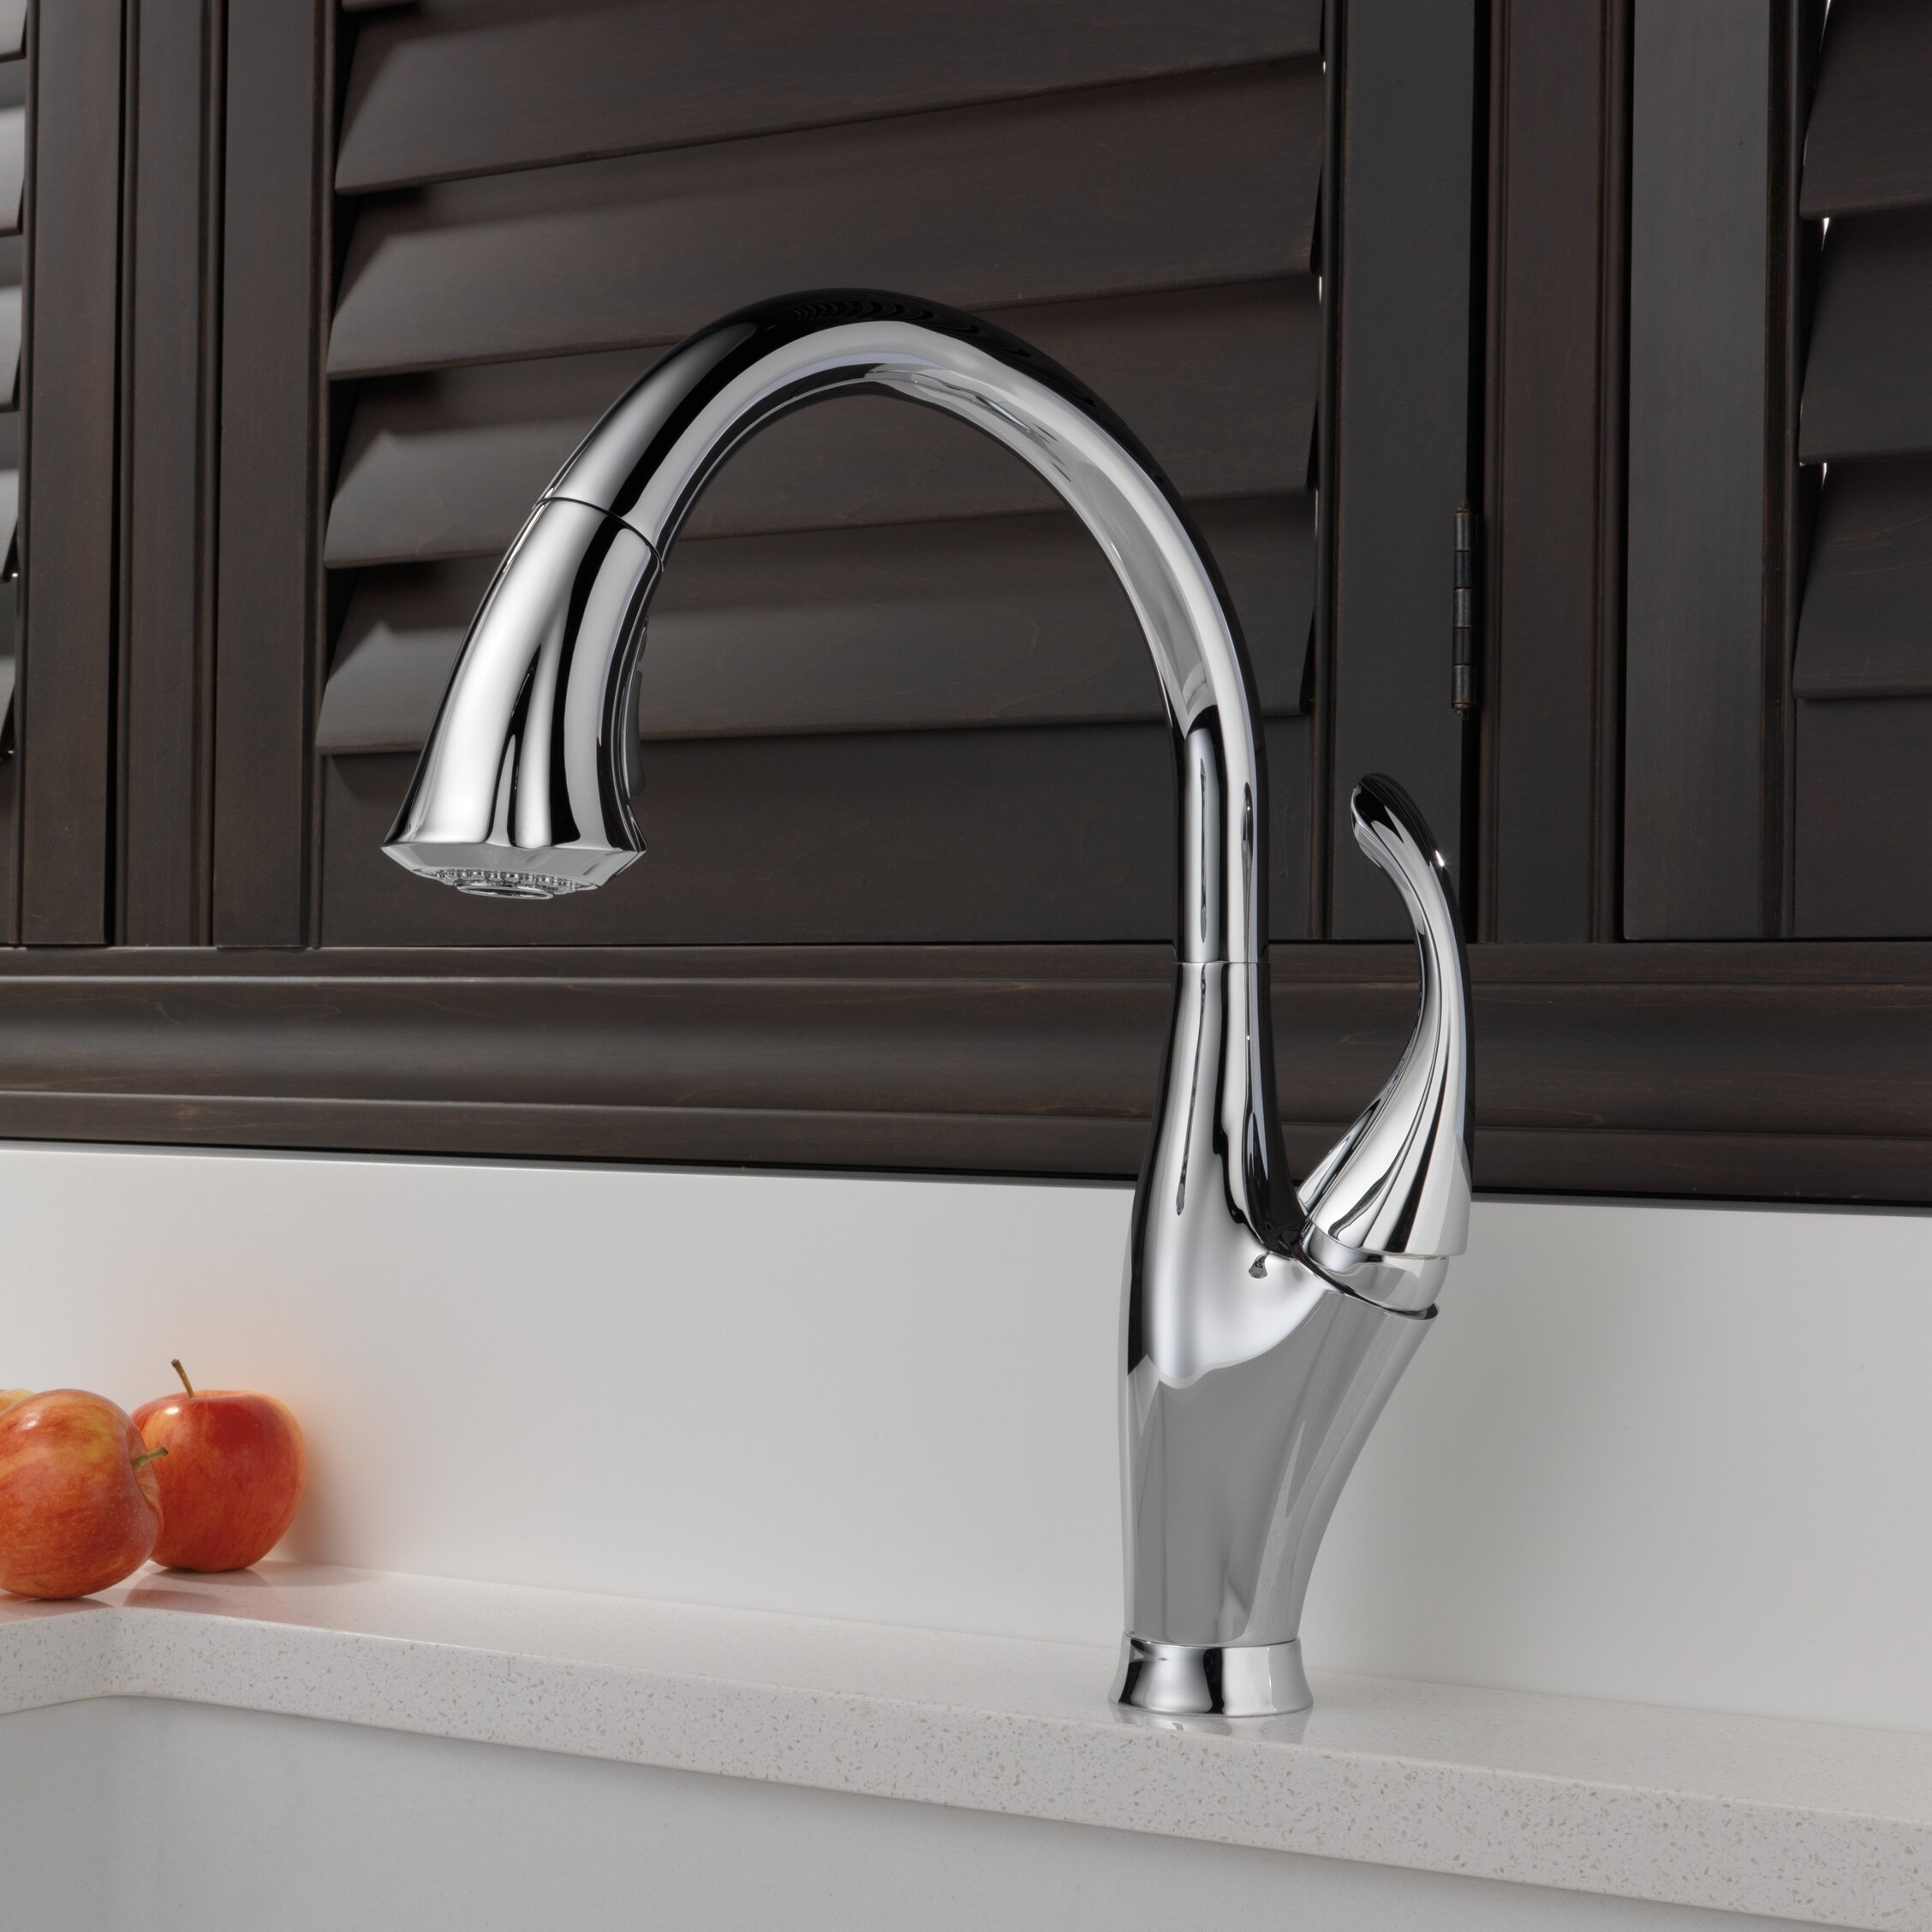 Terrific Addison Pull Down Single Handle Kitchen Faucet With Diamond Seal Technology And Magnatite Docking Download Free Architecture Designs Embacsunscenecom